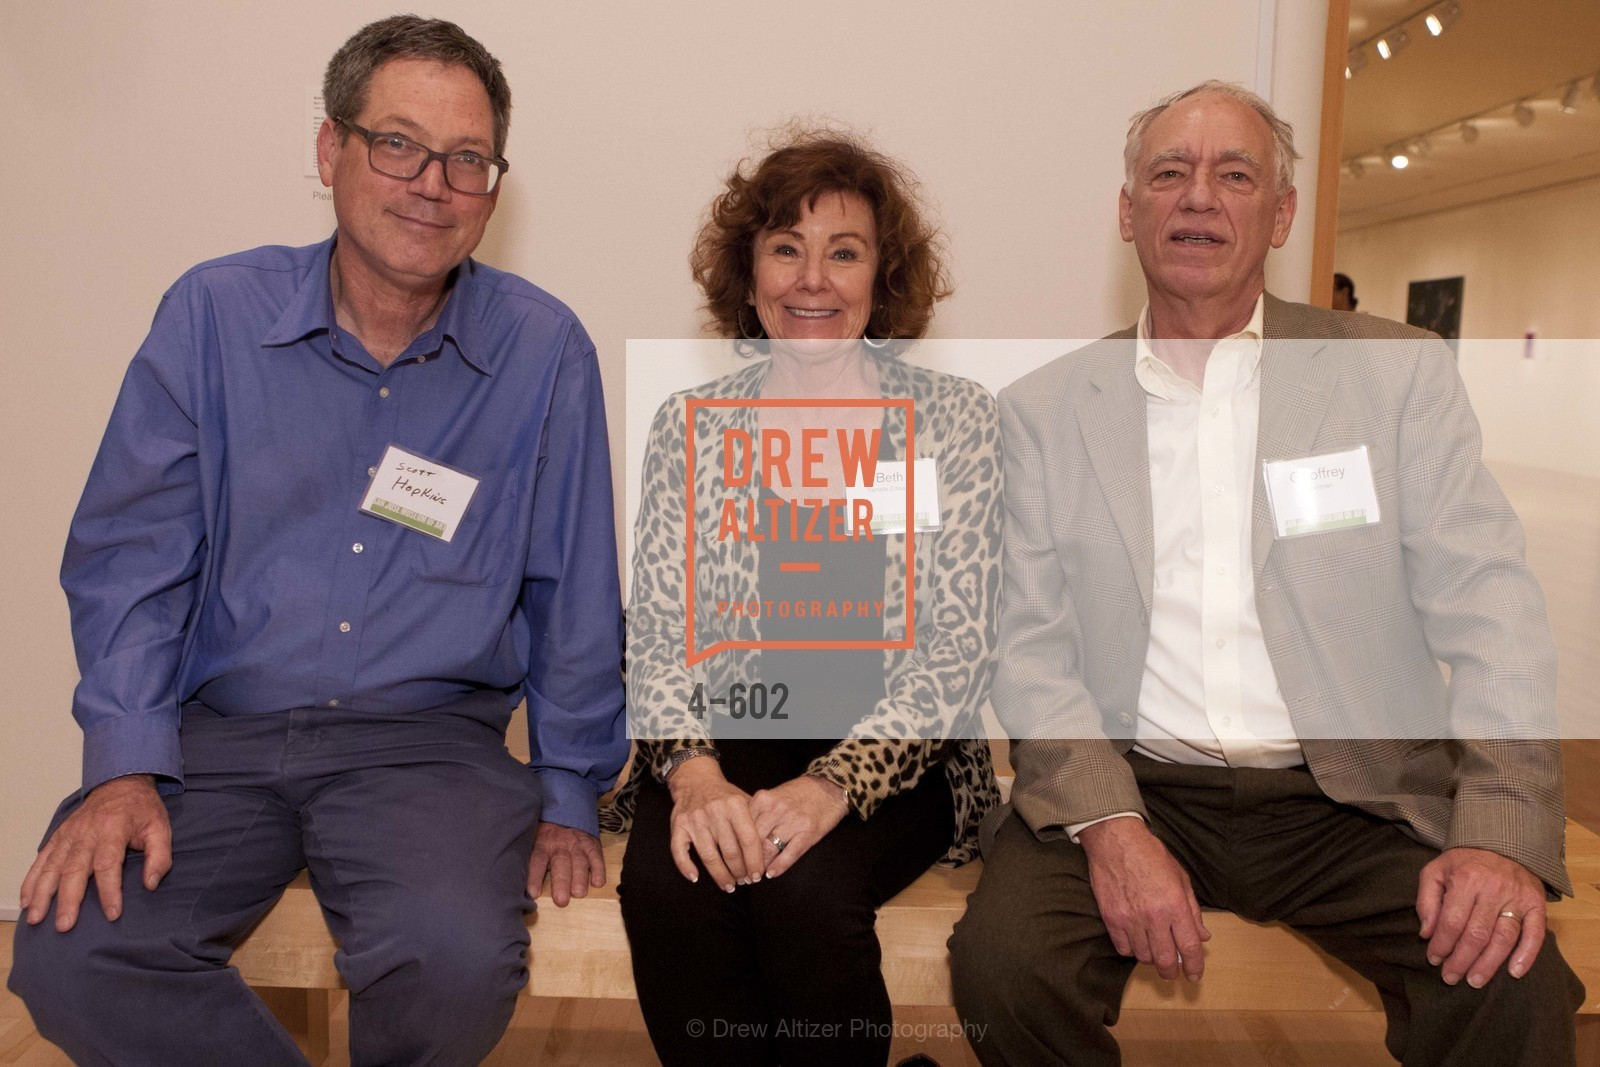 Scott Hopkins, Beth Yarnelle Edwards, Jeff Rothman, SAN JOSE MUSEUM OF ART Fall Reception Opening, US, October 8th, 2014,Drew Altizer, Drew Altizer Photography, full-service agency, private events, San Francisco photographer, photographer california